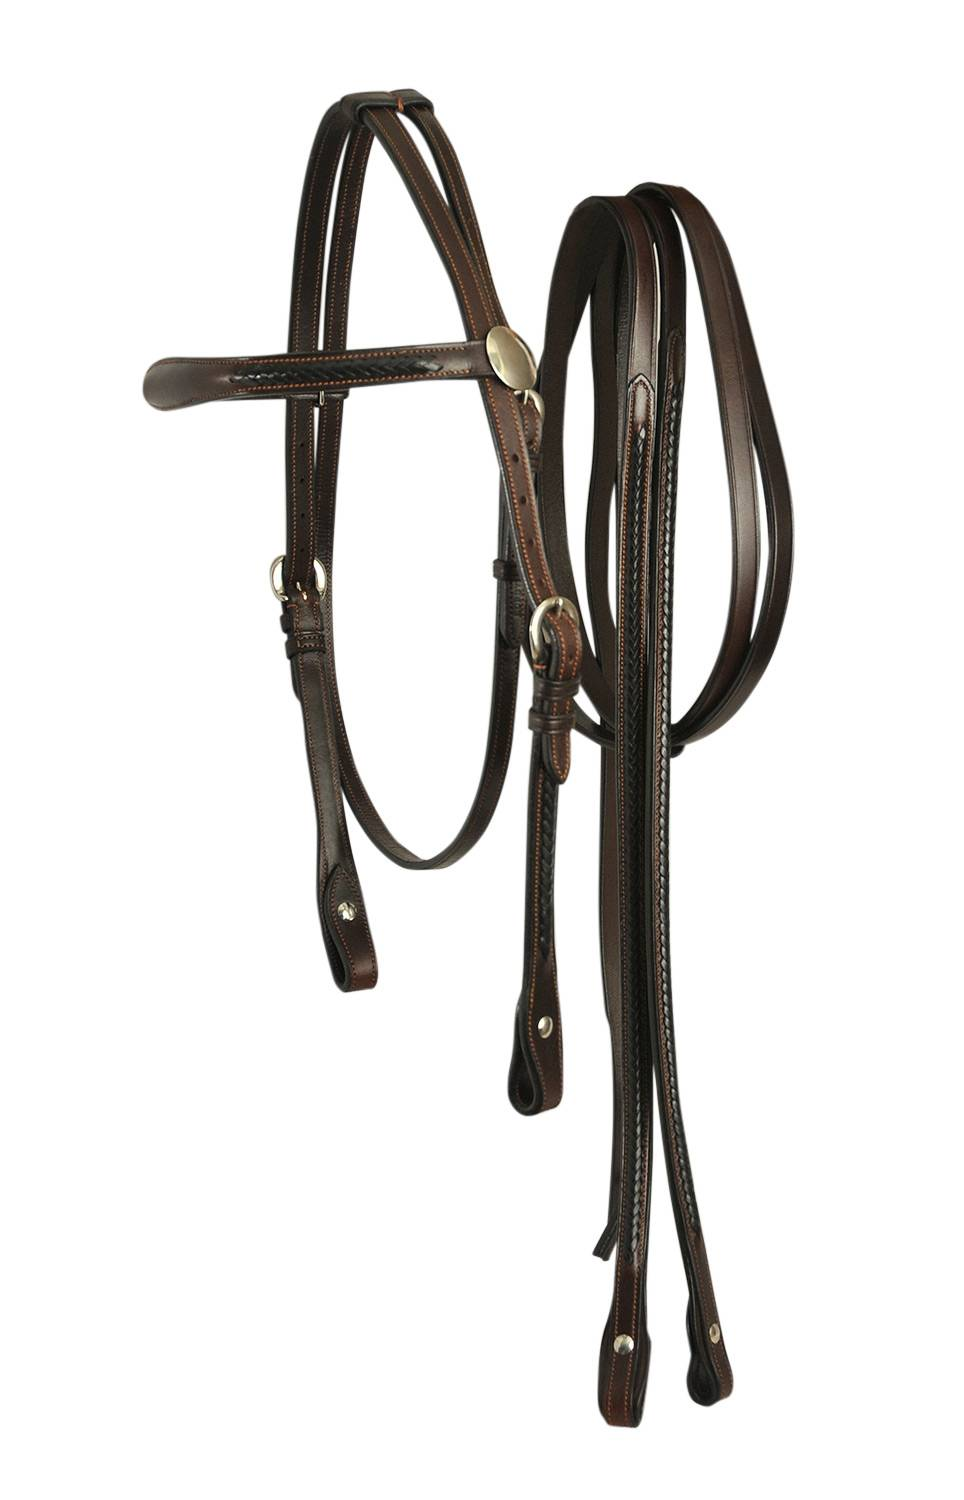 Bobby's Complete Braided Western Bridle With Side Adjustment And Matching Reins